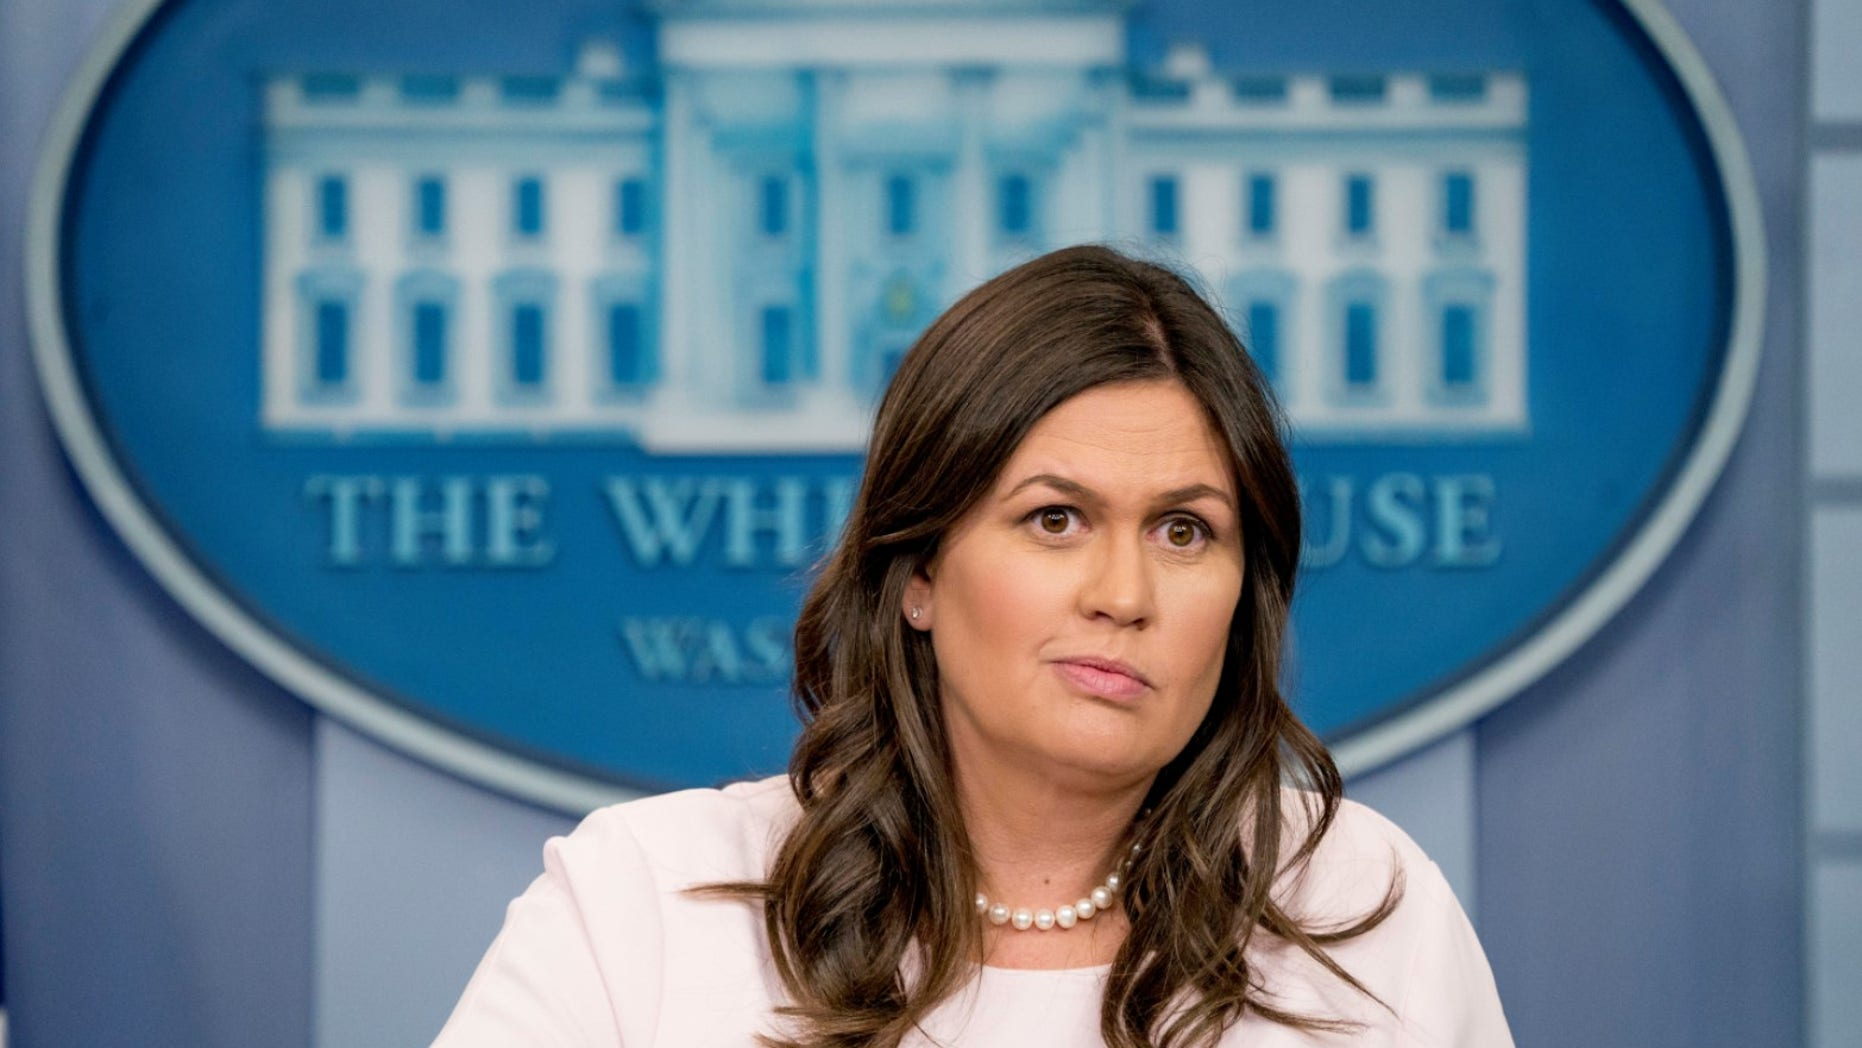 White House press secretary Sarah Sanders hit back Wednesday night against reports that she was considering leaving her role.